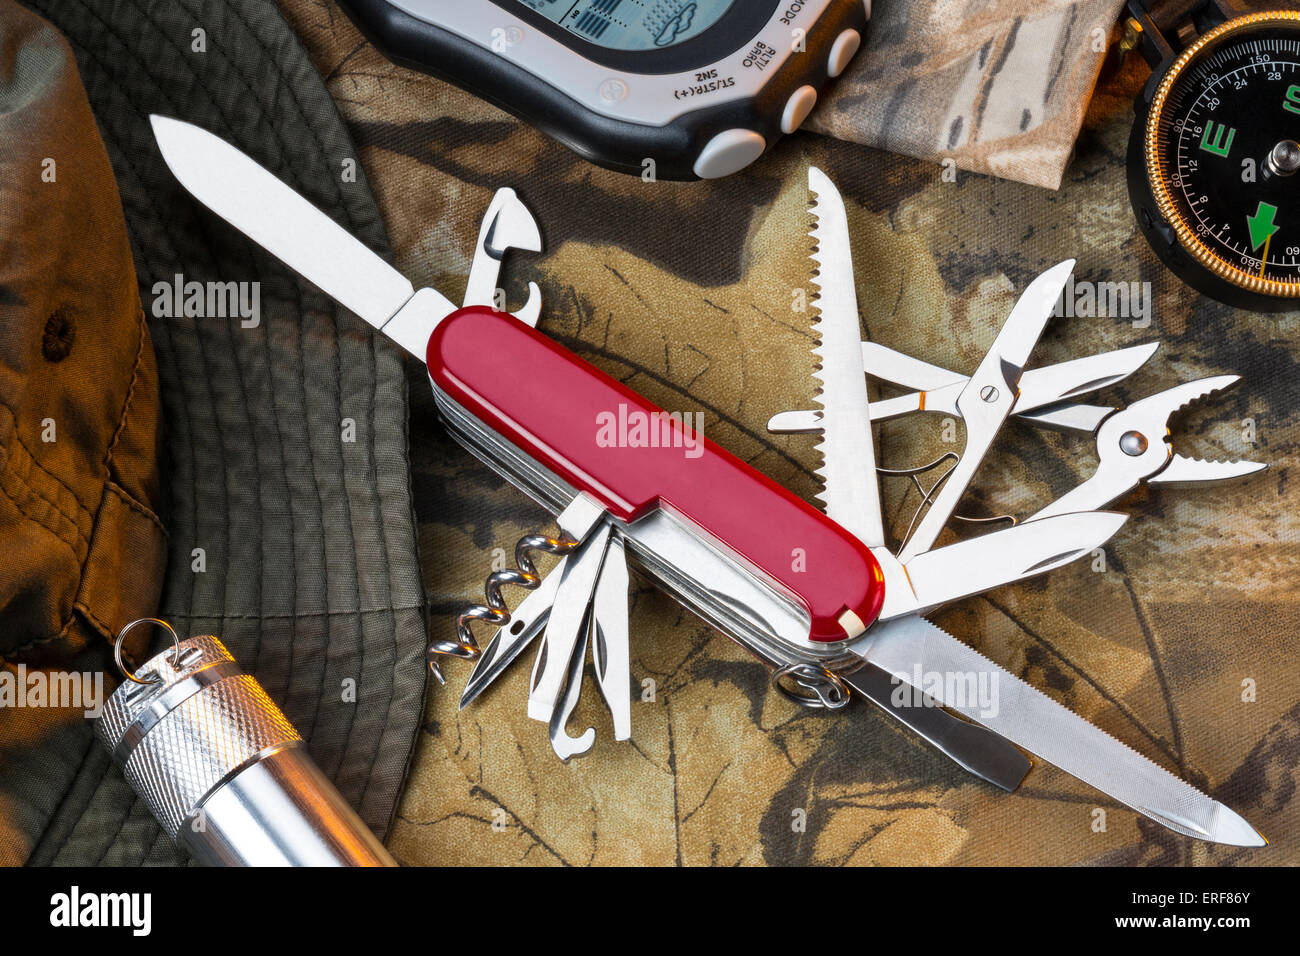 A Swiss Army style of multifunctional knife and equipment for the great outdoors. - Stock Image